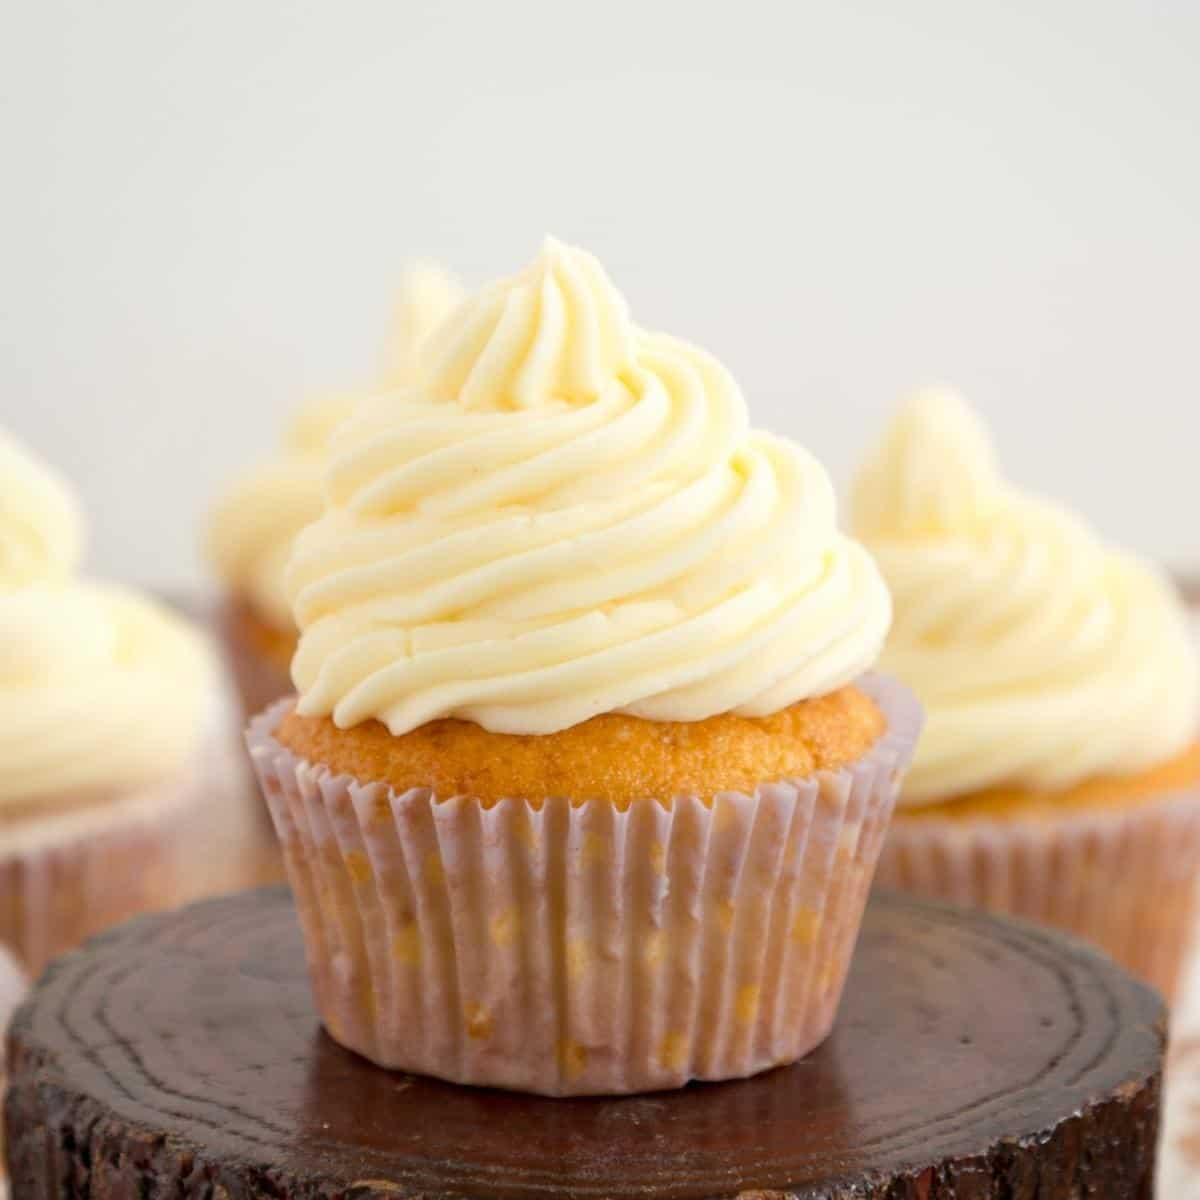 A cupcakes frosted with buttercream swirl.